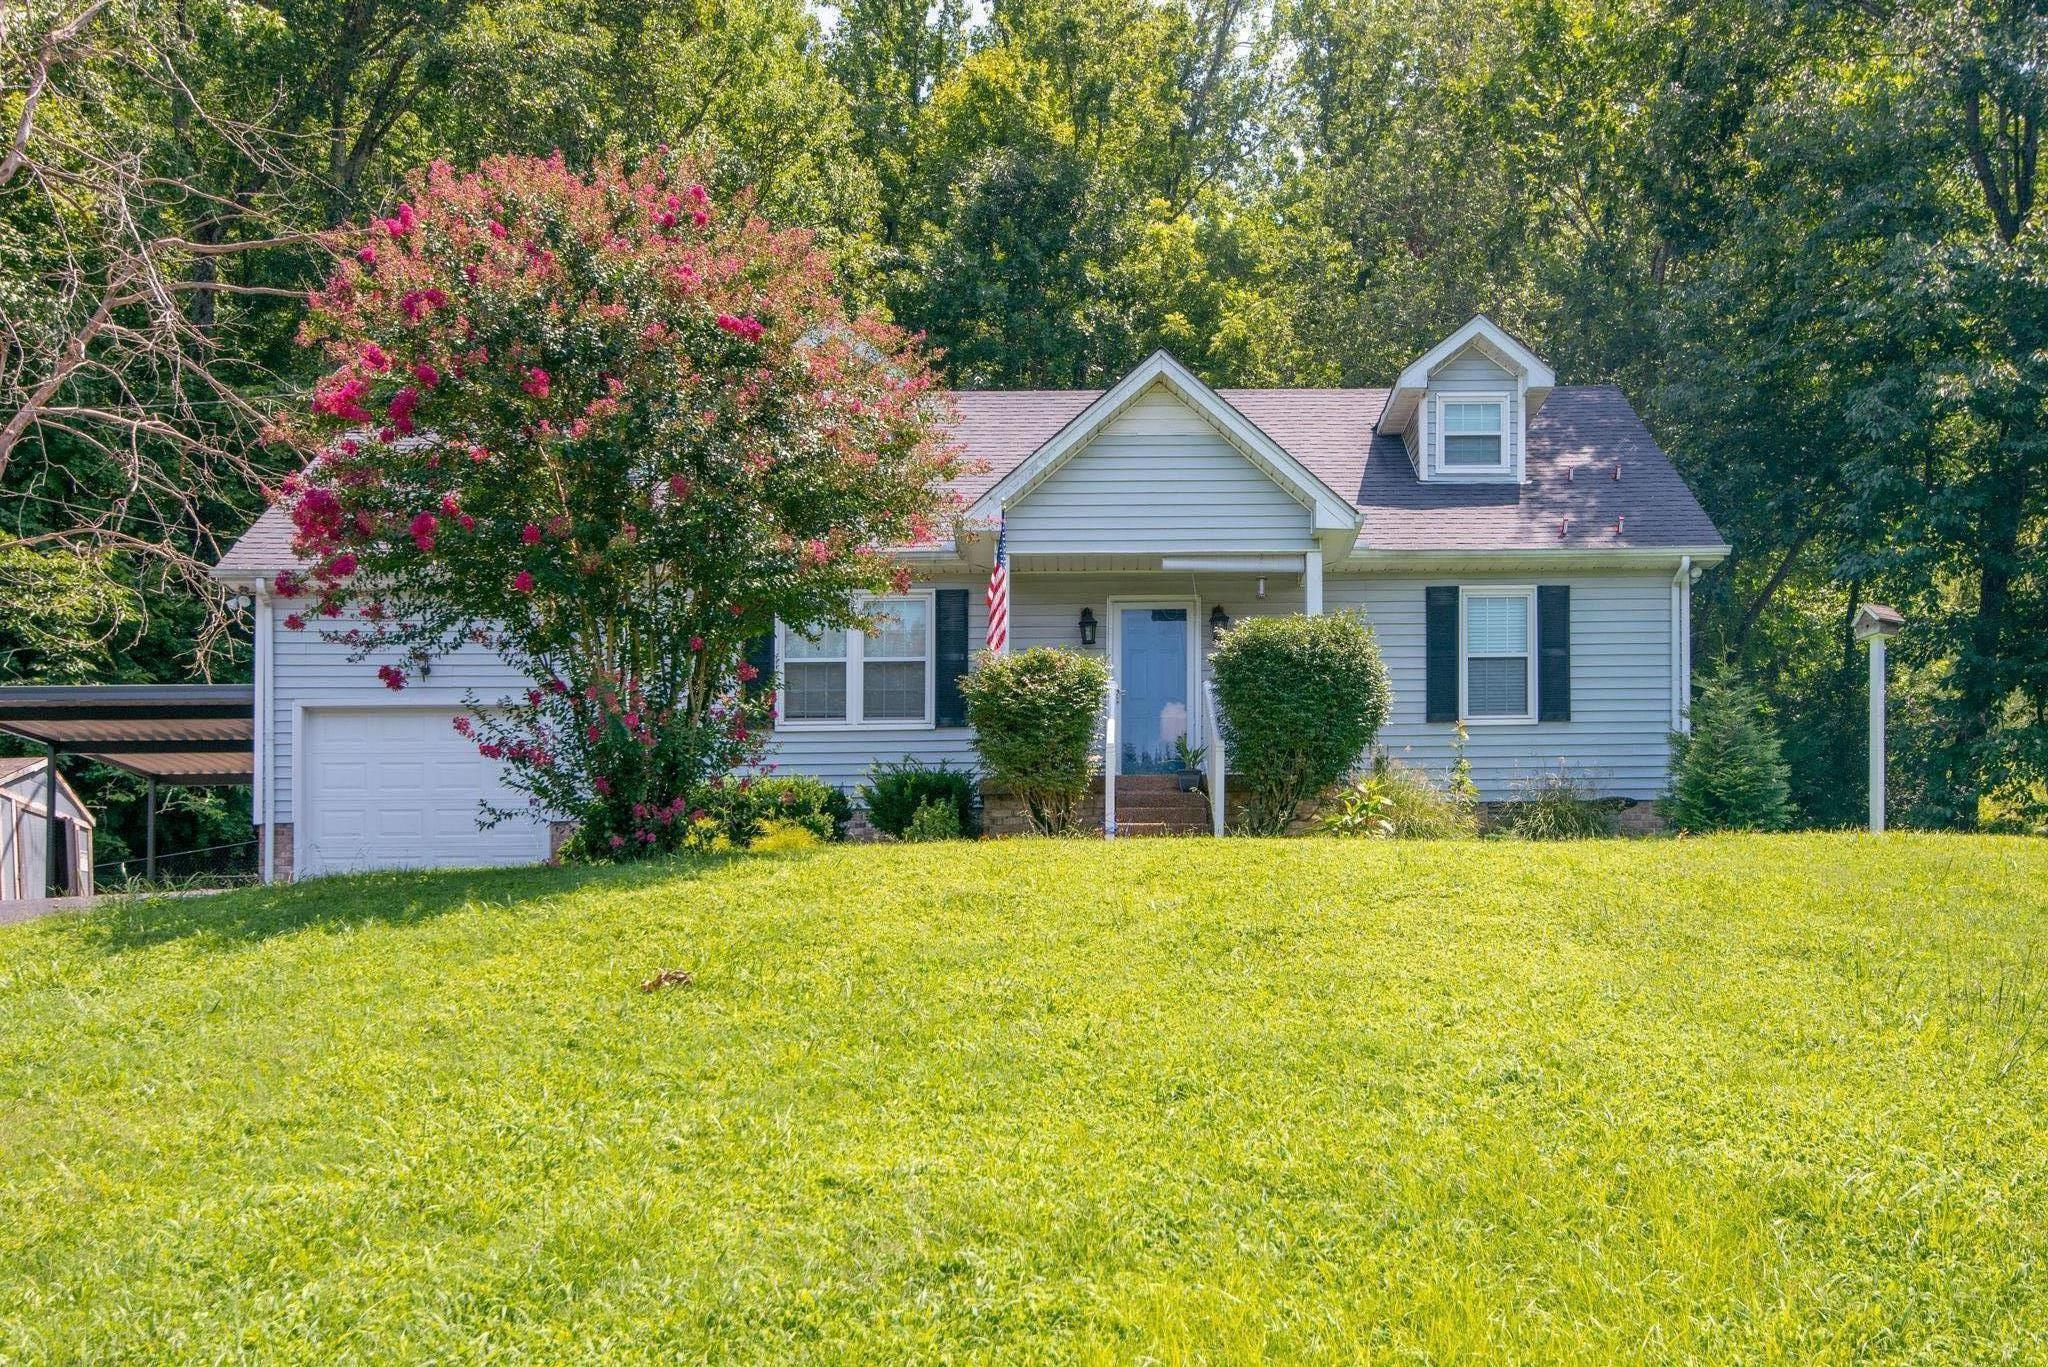 4647 Whites Creek Pike, Whites Creek, TN 37189 - Whites Creek, TN real estate listing